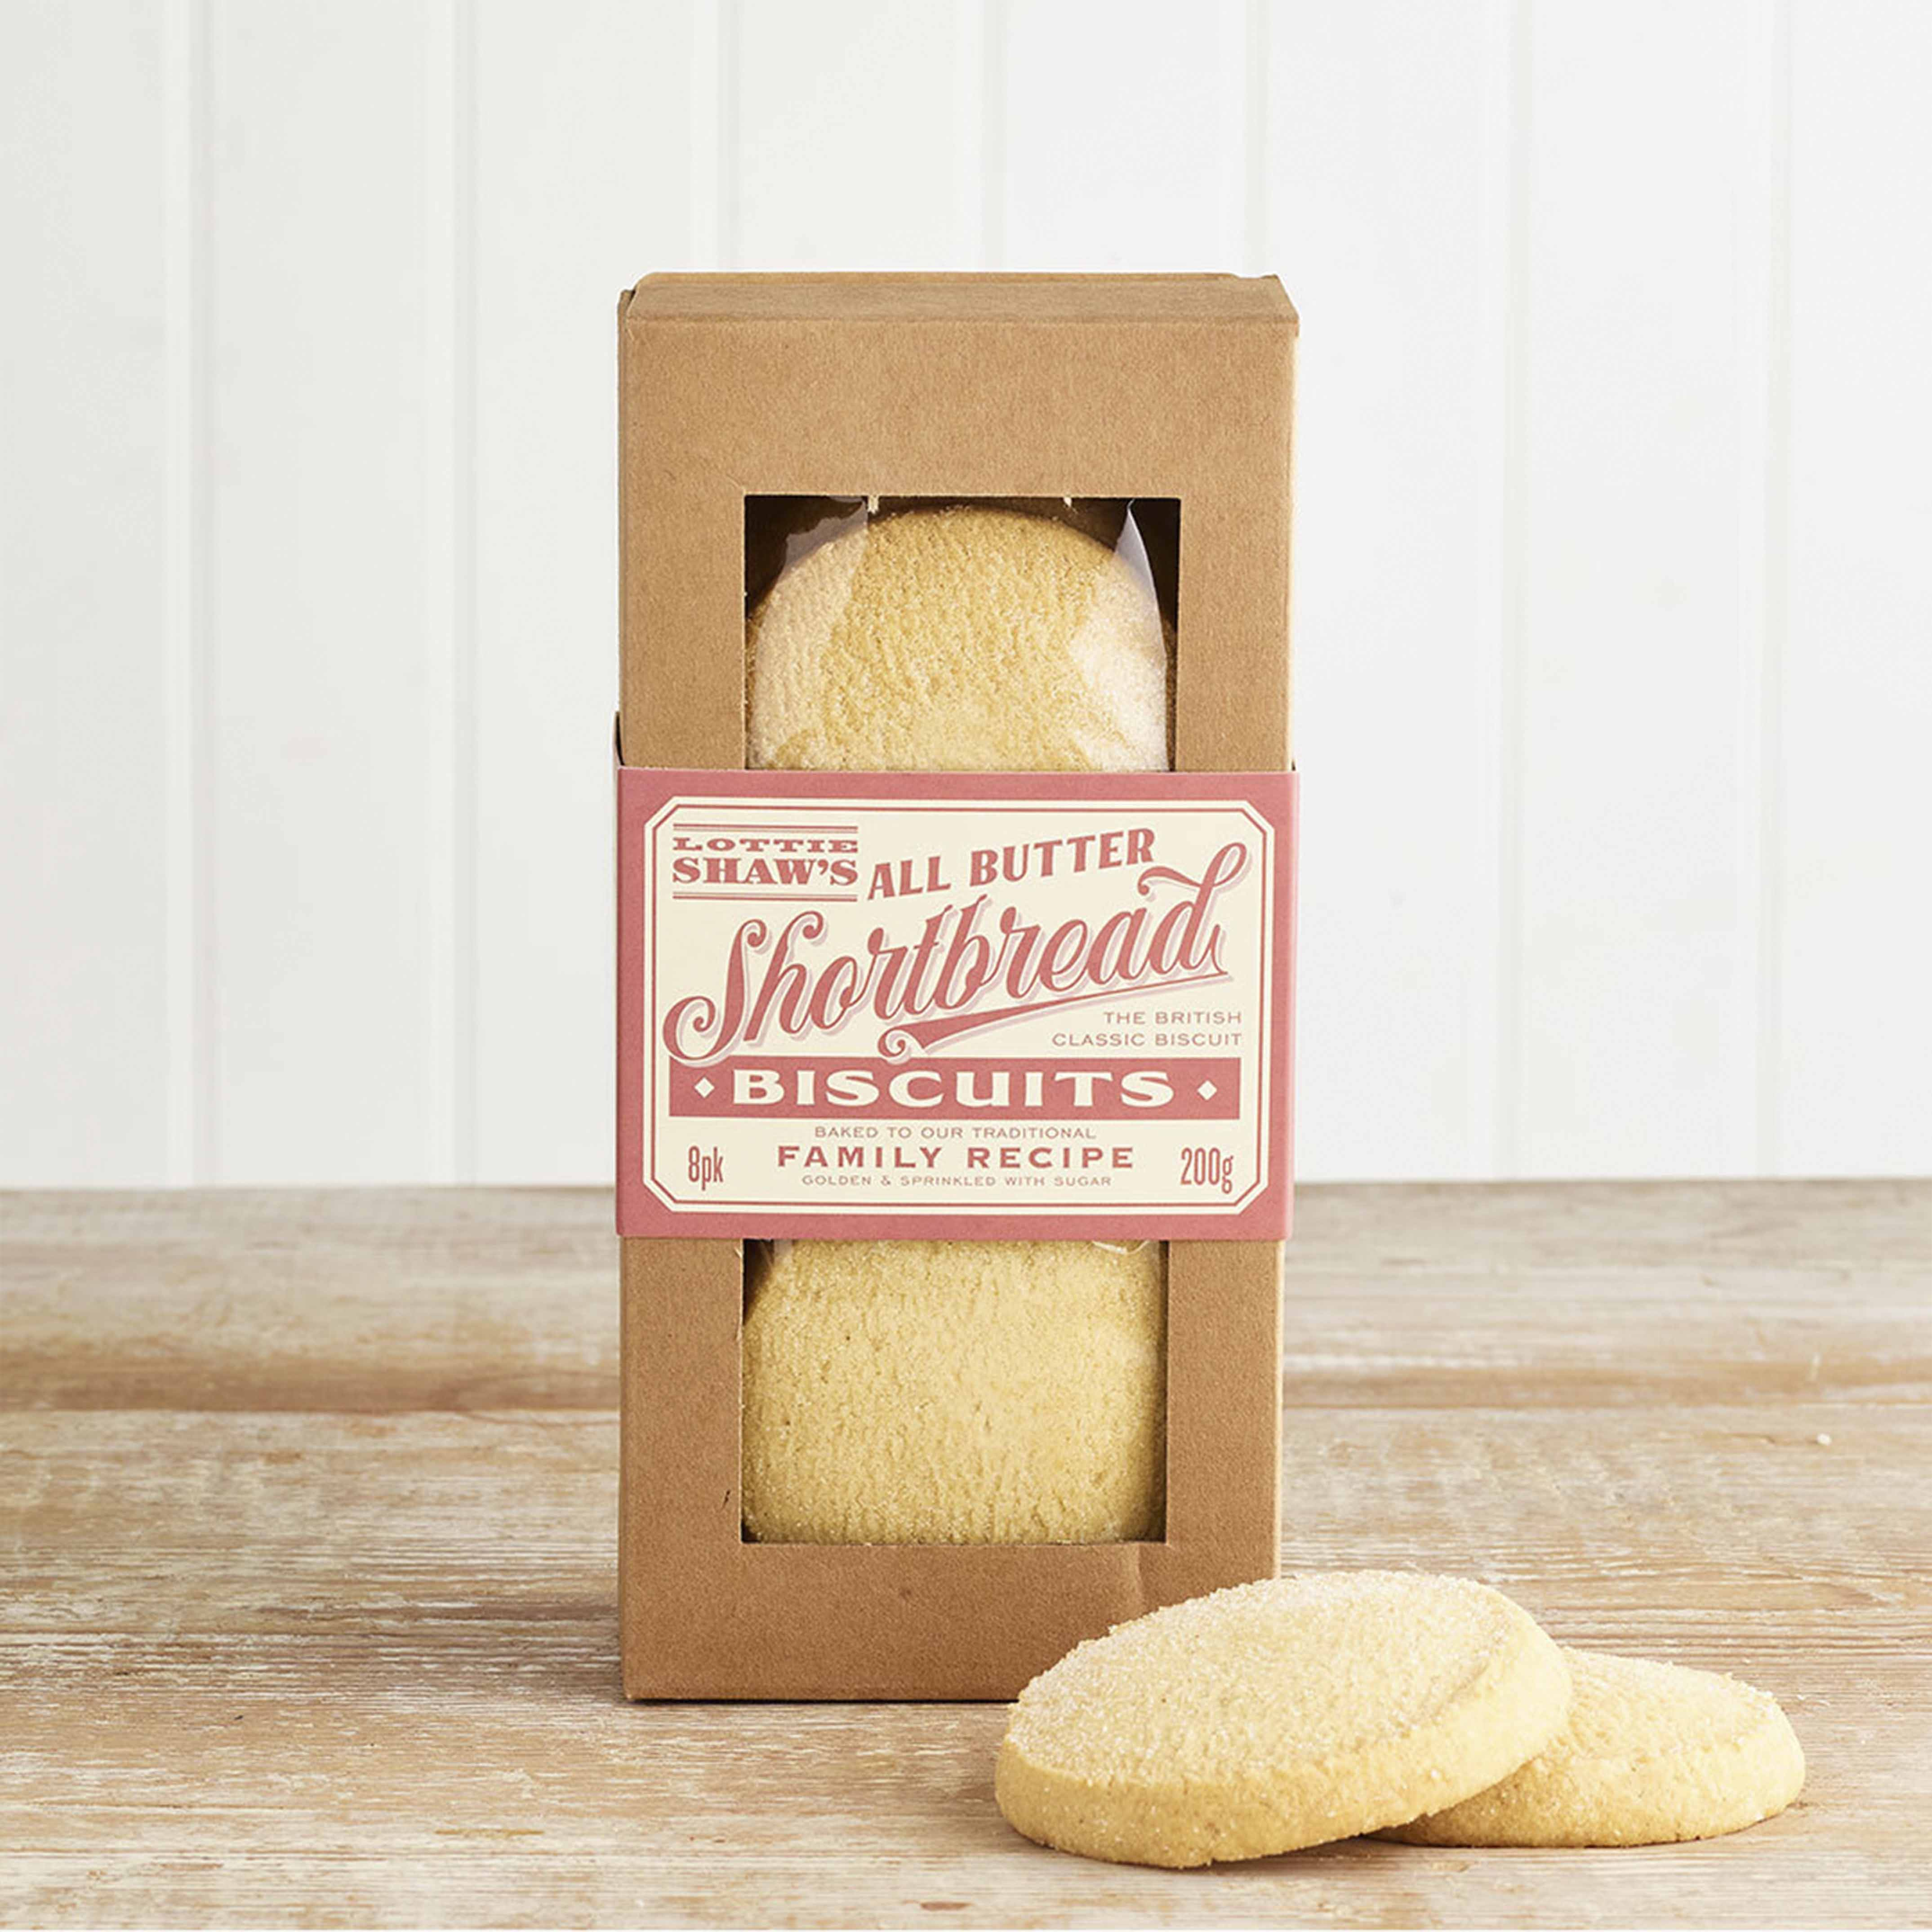 Lottie Shaw's All Butter Shortbread Biscuits, 200g